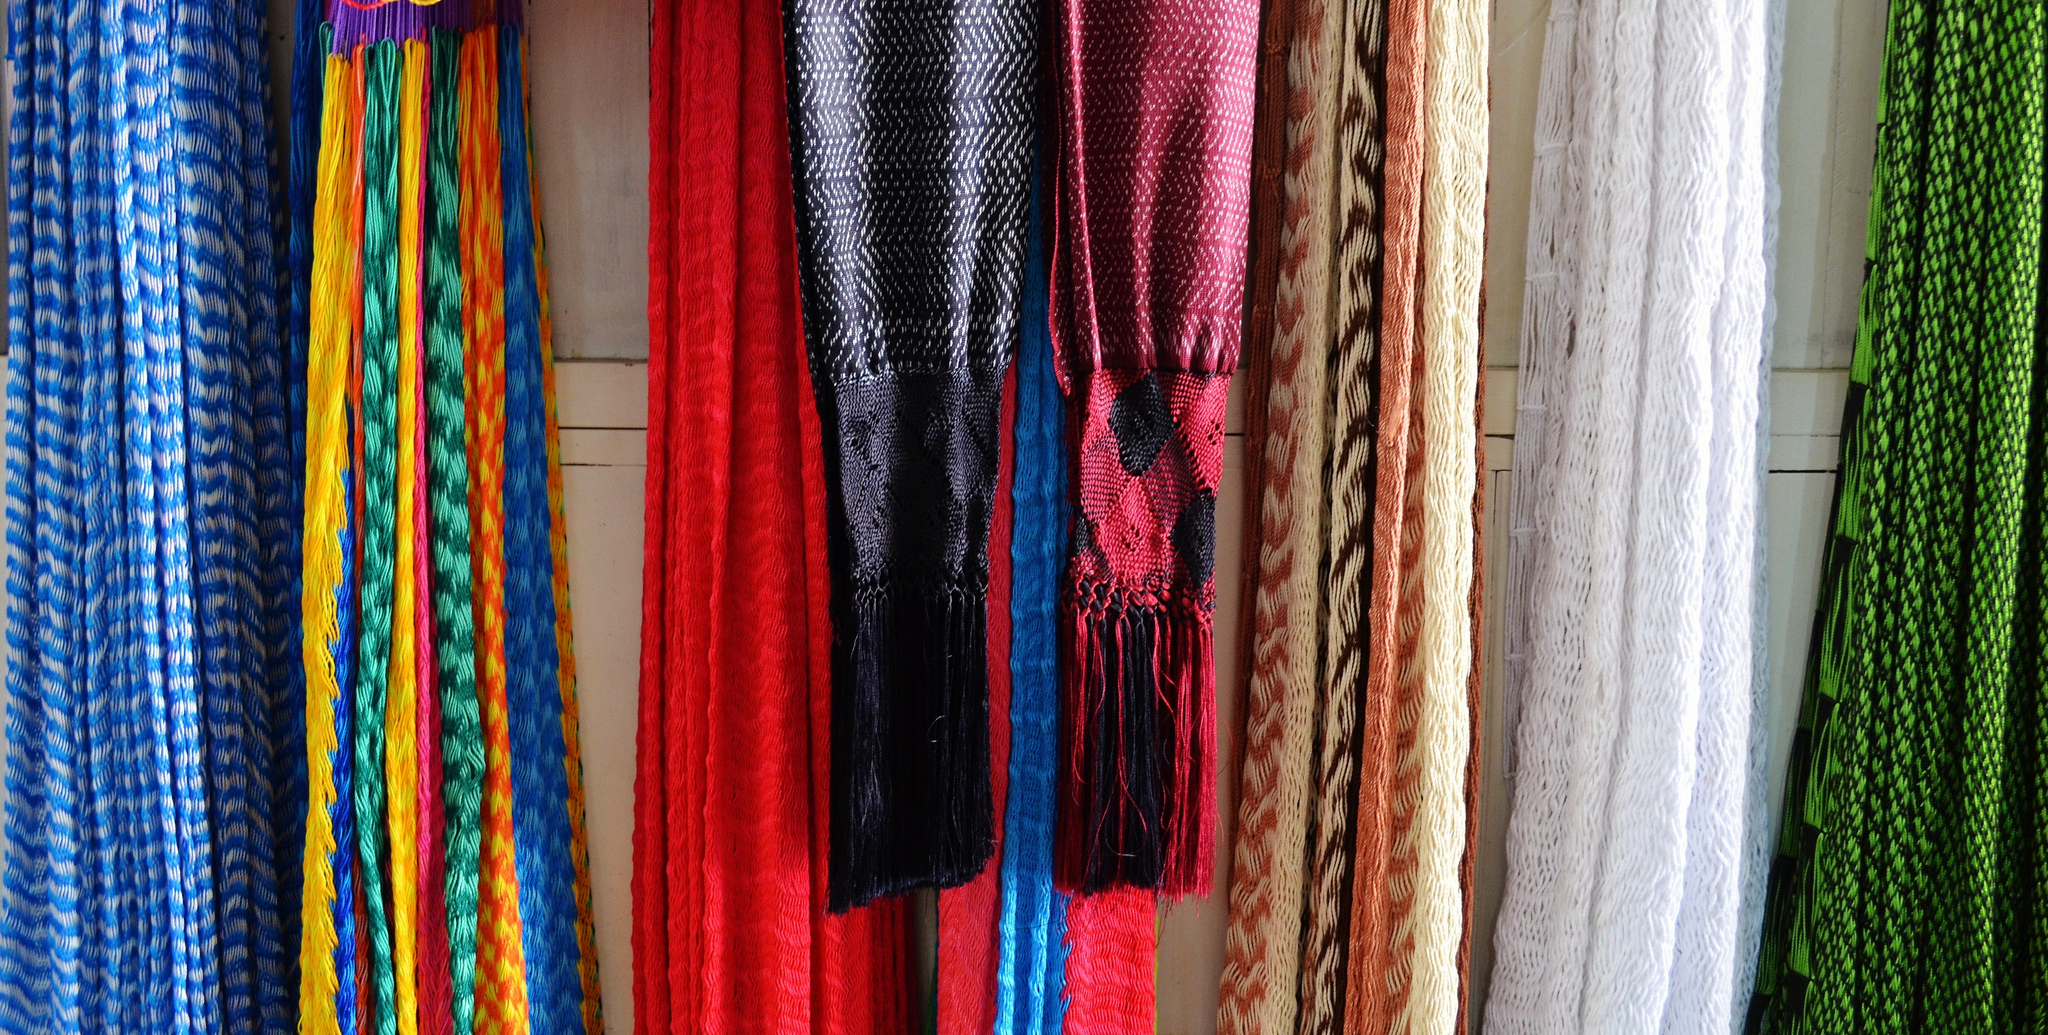 Using a rebozo to calm and comfort children